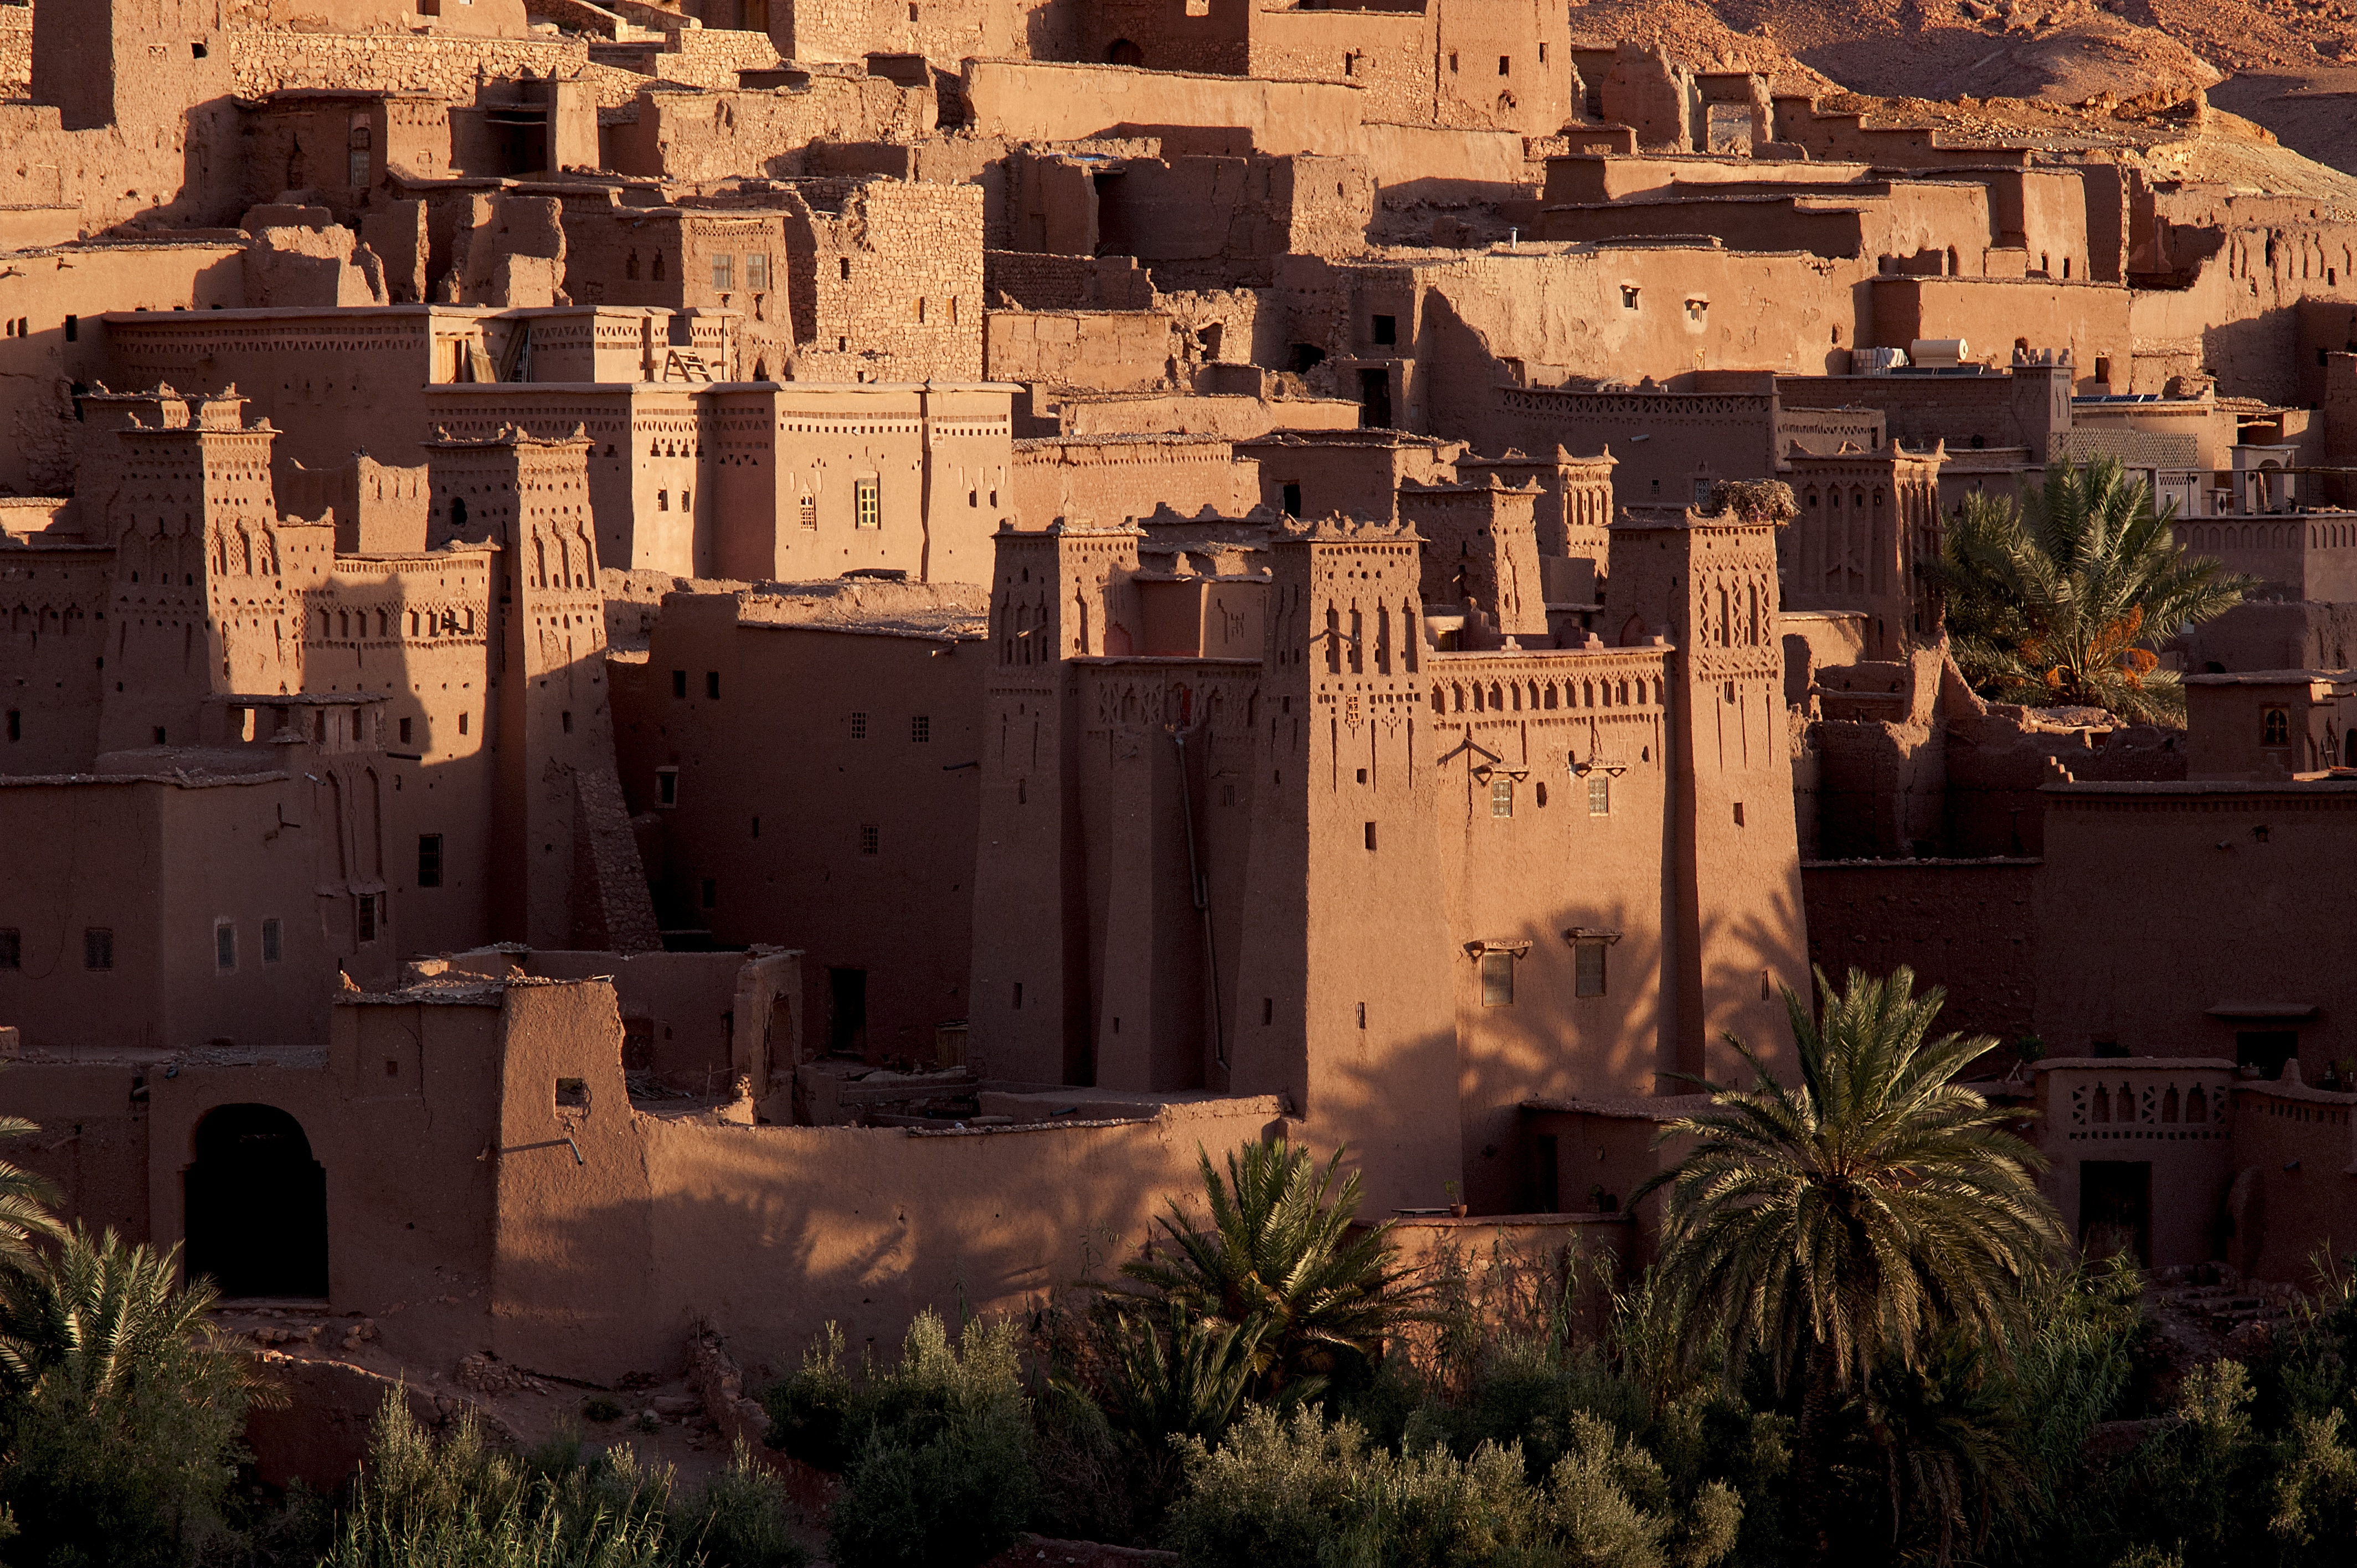 Ait Benhaddou fortified town and kasbahs